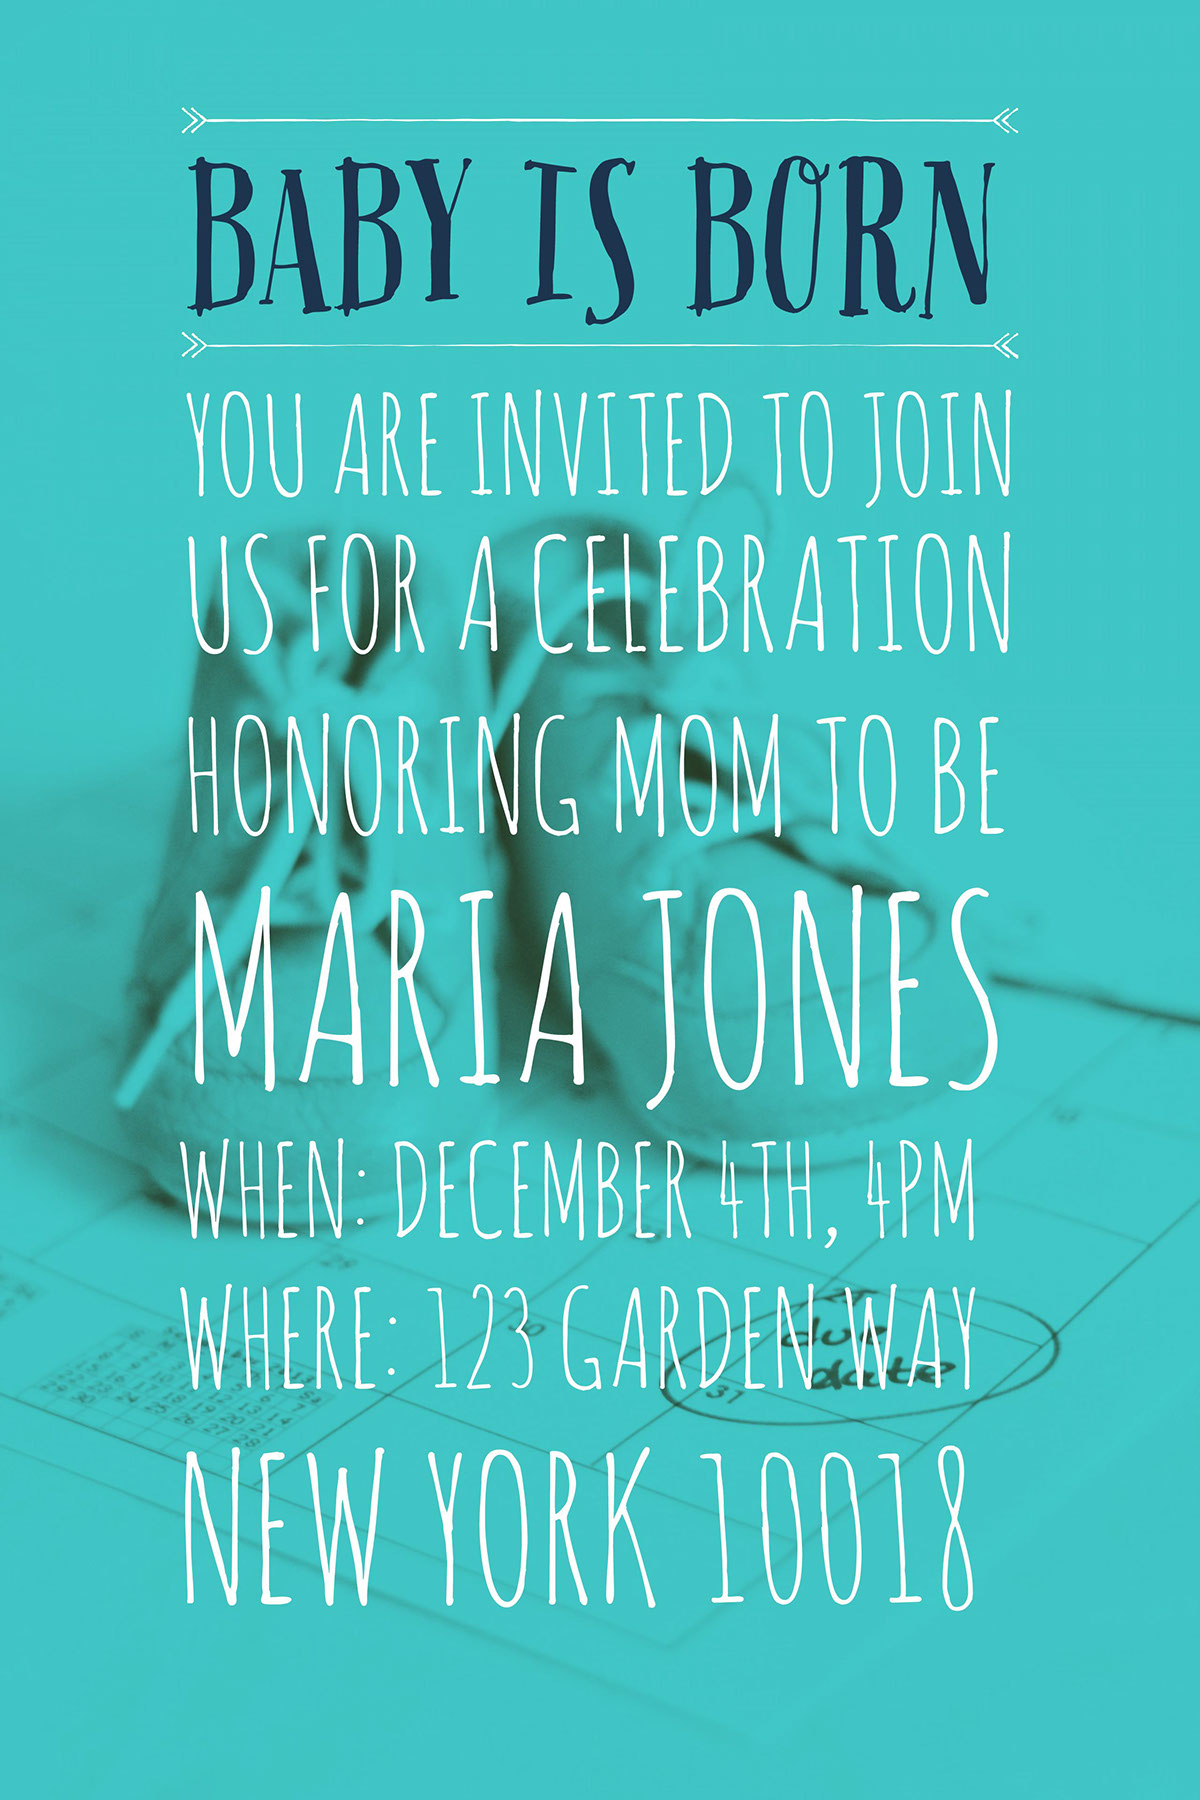 When: December 4th, 4pm Where: 123 Garden Way New York 10018 When: December 4th, 4pm Where: 123 Garden Way New York 10018 